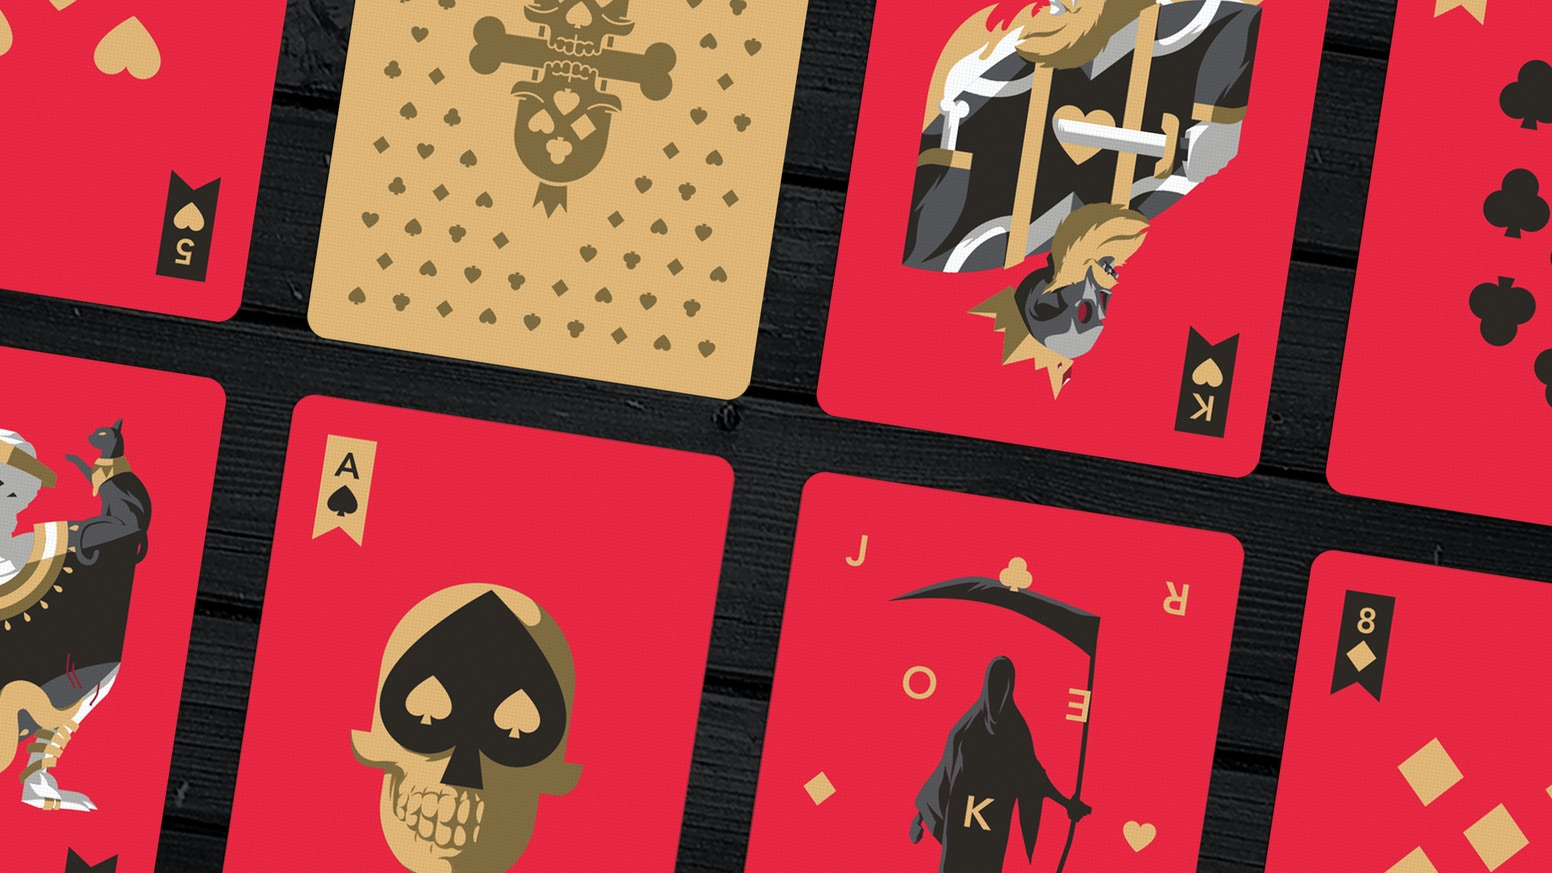 The first in a line of custom playing card decks themed around life and death, by artist Florey.